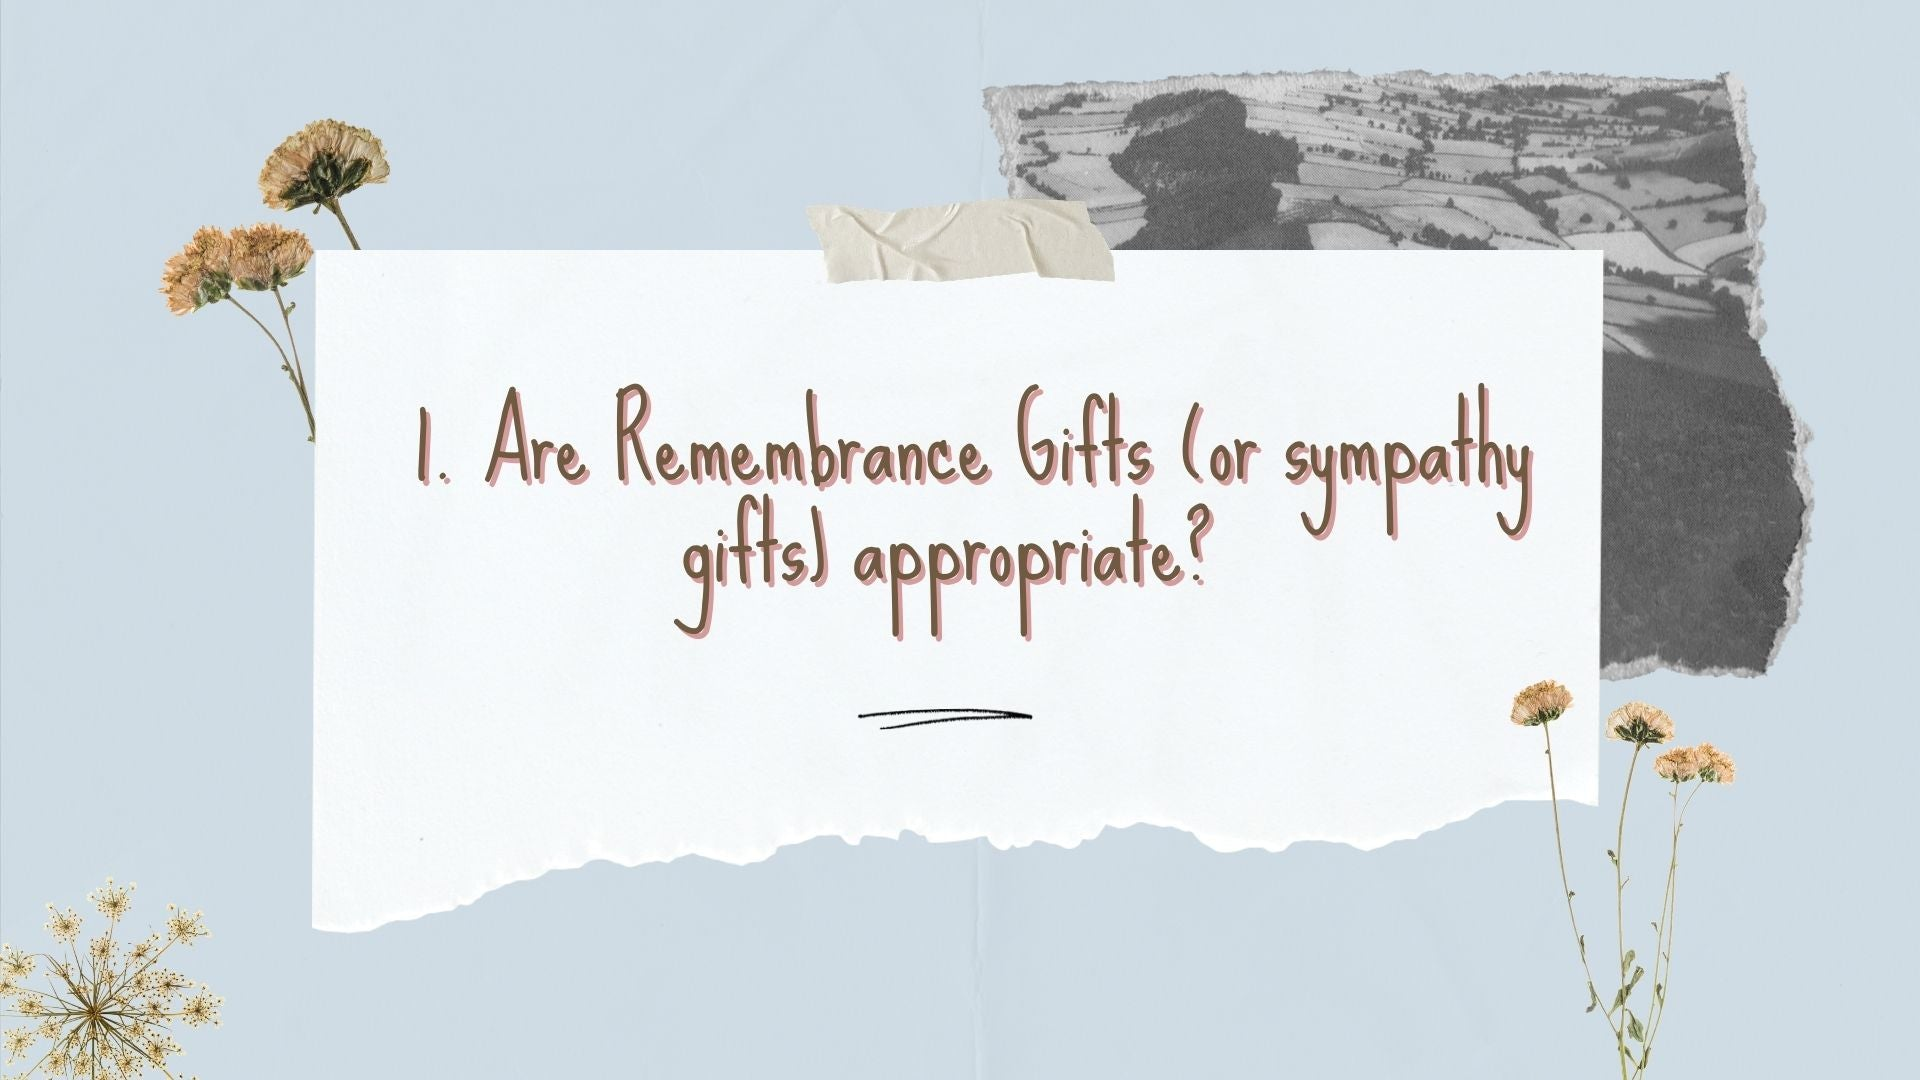 Are Remembrance Gifts (or sympathy gifts) appropriate?